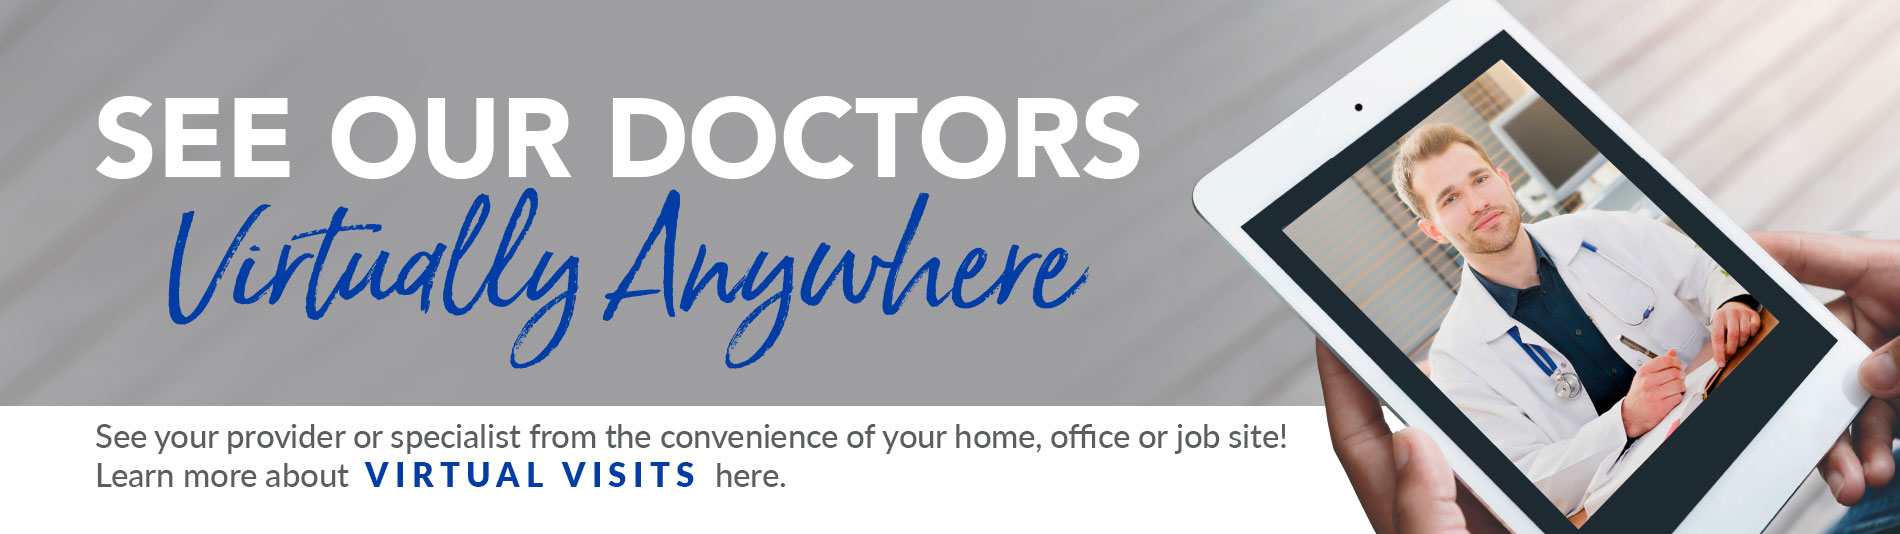 See our doctors virtually anywhere! See your provider or specialist from the convenience of your home, office or job site! Click here to learn more about virtual visits.